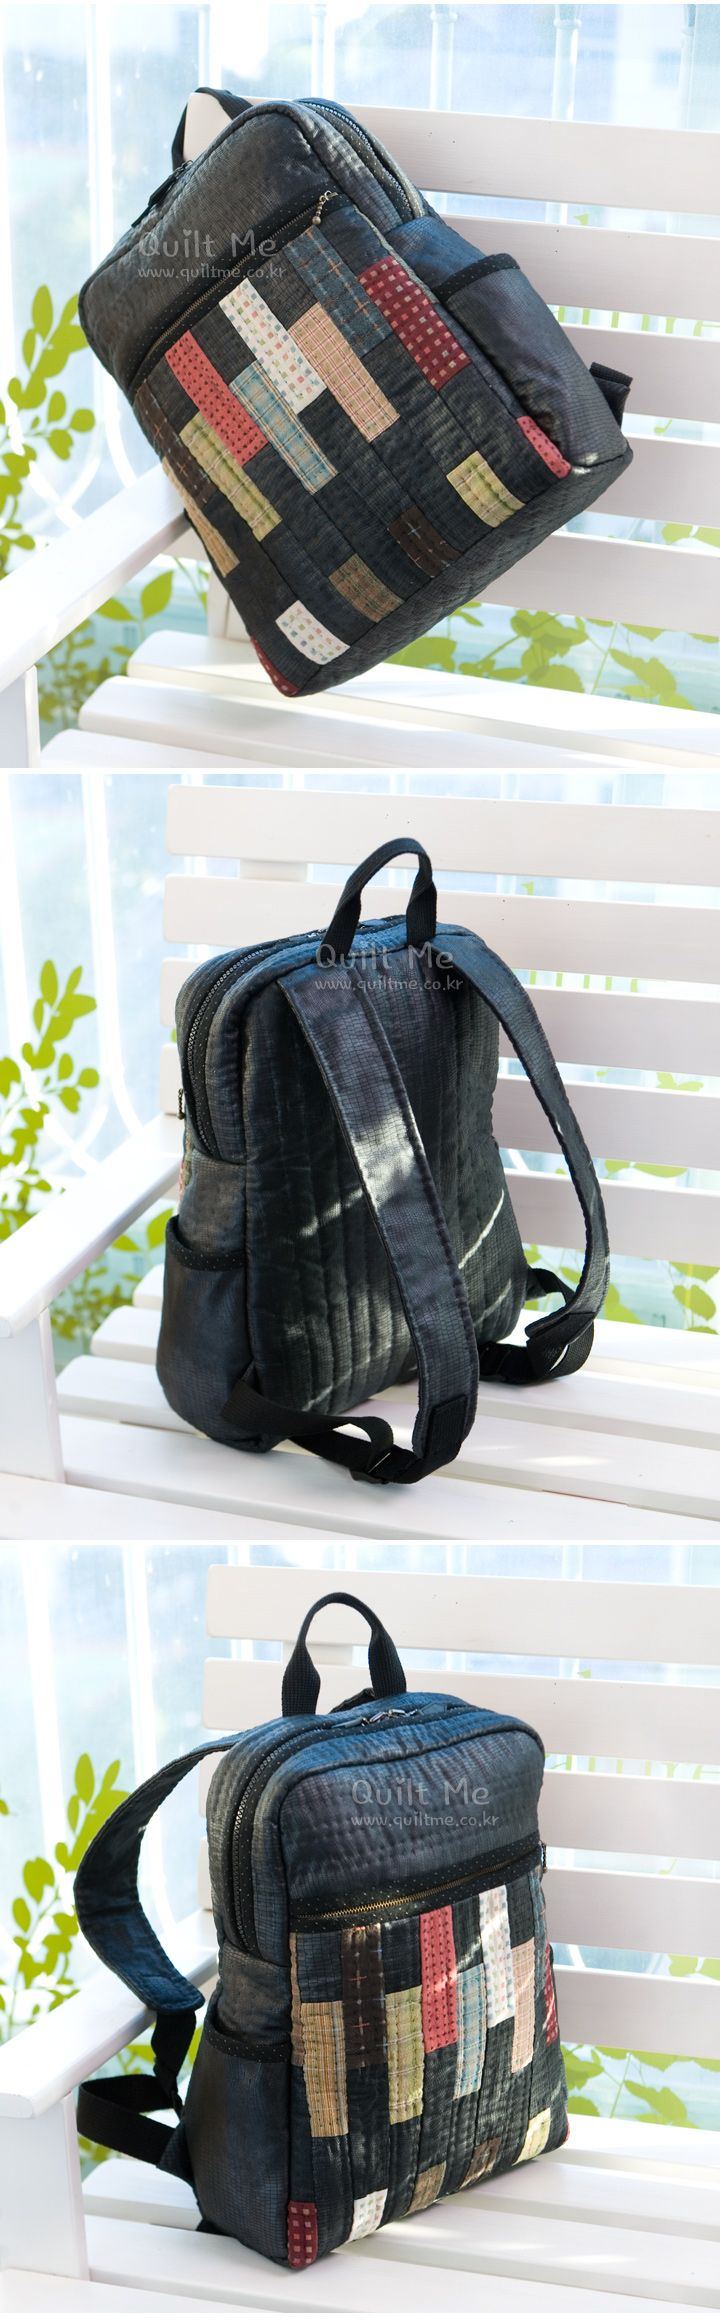 Korean website, so no pattern but nice backpack.